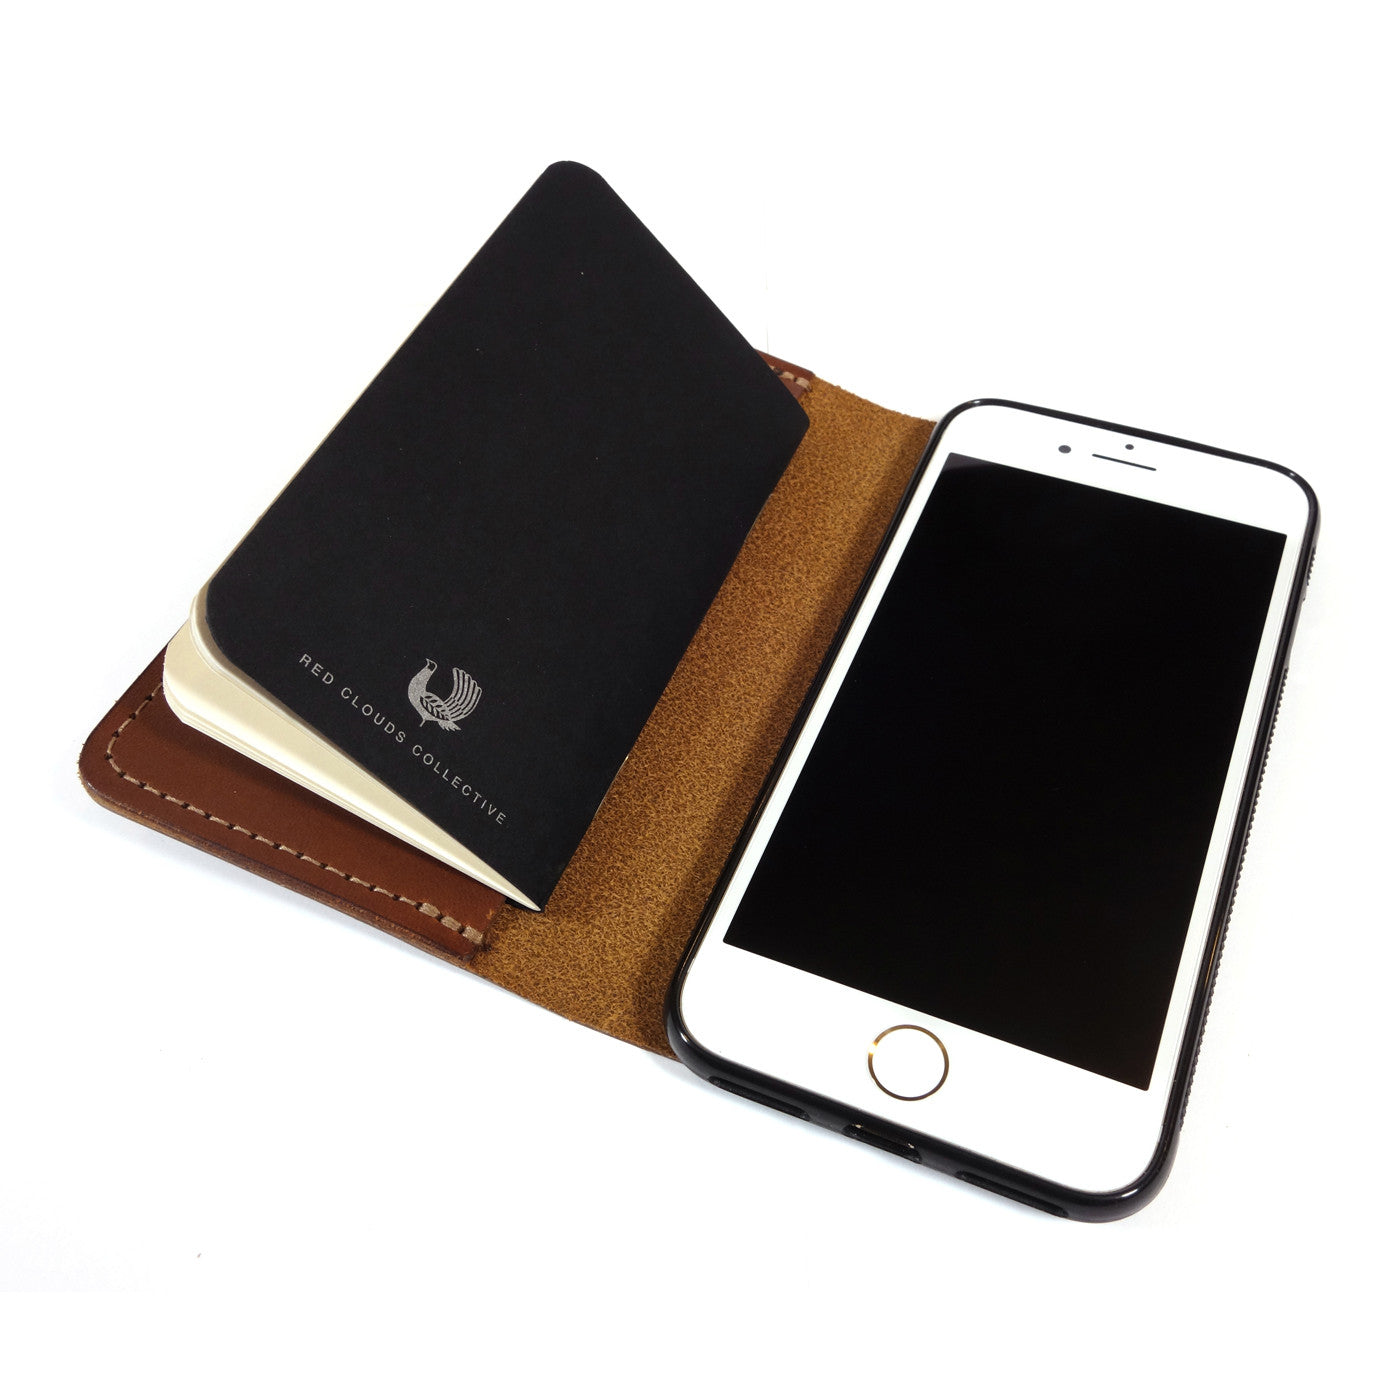 iPhone 7 leather case, made in the usa, iphone 7, iphone wallet, leather iphone 7 case